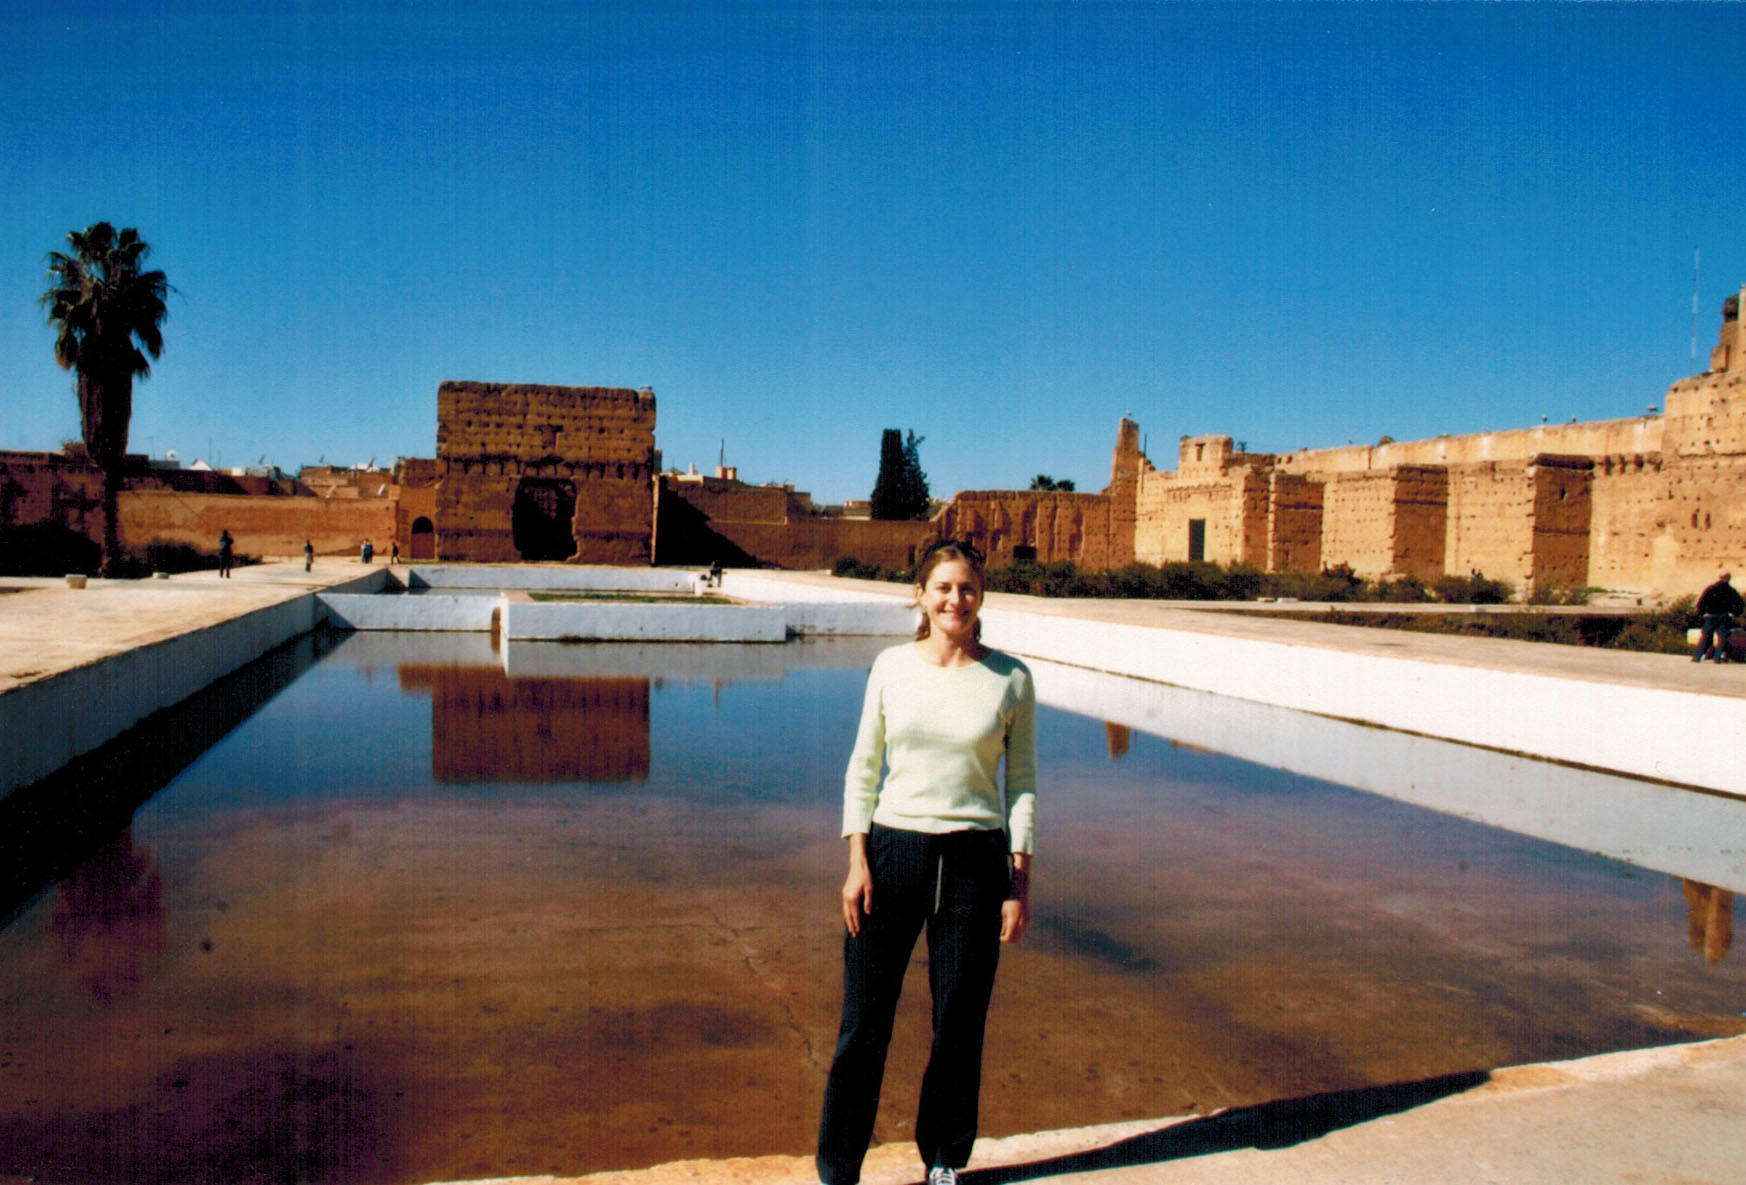 Christi at the ruins of the El Badi Palace in Marrakech, Morocco